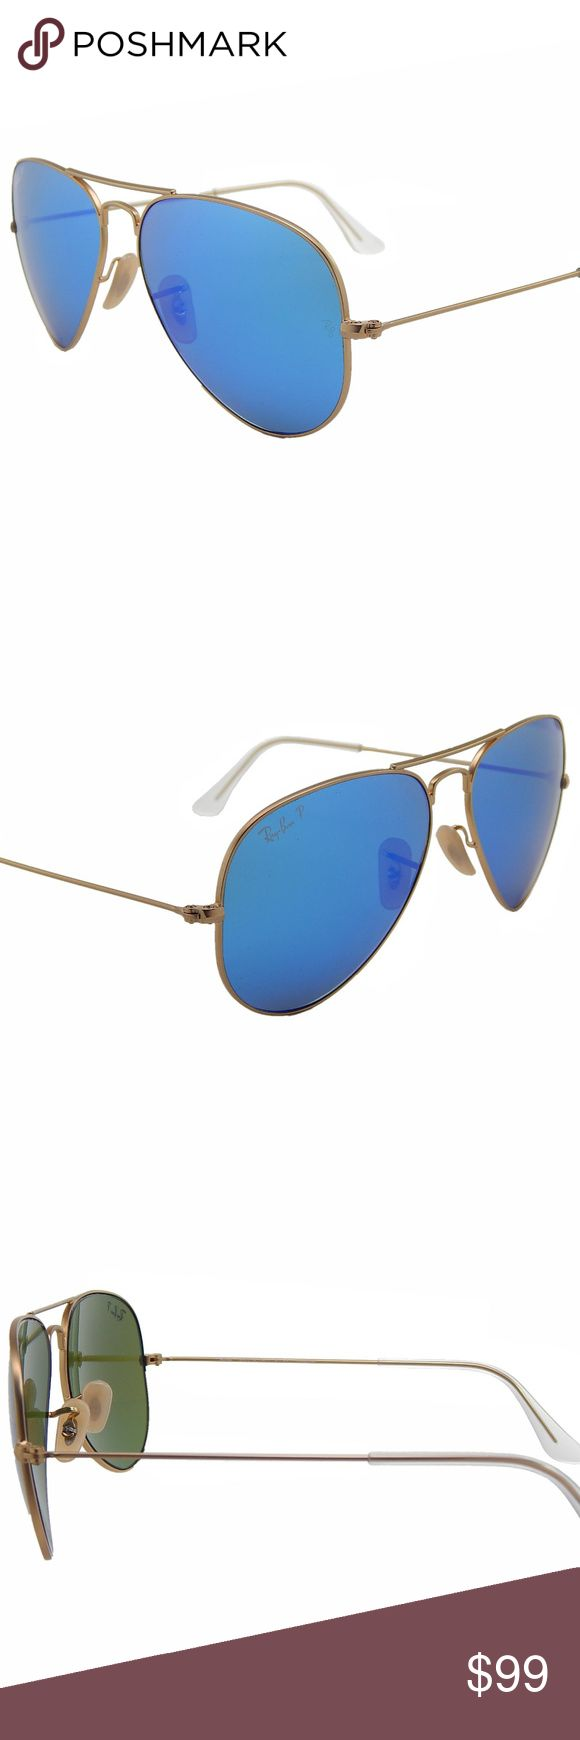 New Ray Ban RB3025 112/4L Polarized Lenses Sunglasses come with Ray Ban case only and SunglassExpo cloth.   MODEL: Aviator RB3025 112/4L FRAME: Matte Gold LENS: Blue MADE IN: Italy  FEATURES:      Ray-Ban is the world's most iconic Eyewear brand and is a global leader in its sector.     Ray-Ban is a brand that embodies America and adventure, great cities and wide-open spaces.     Ray-Ban consistently blends high-tech design, lenses, and materials     Polarized lenses.  100% SATISFACTION…